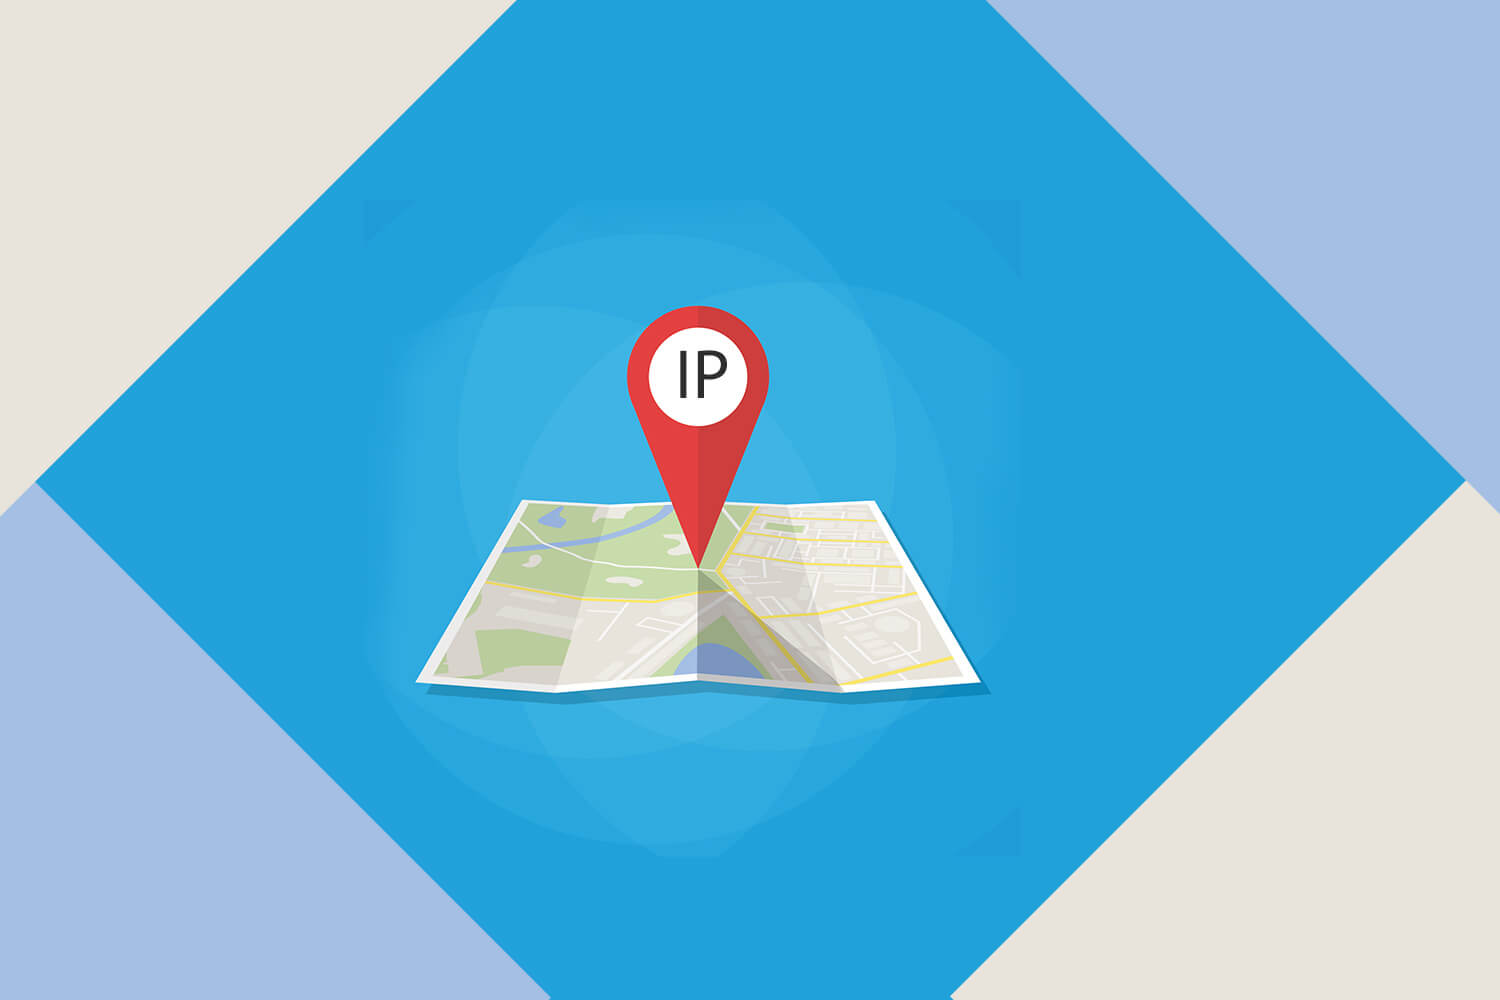 8 facts why IP location targeting is not accurate